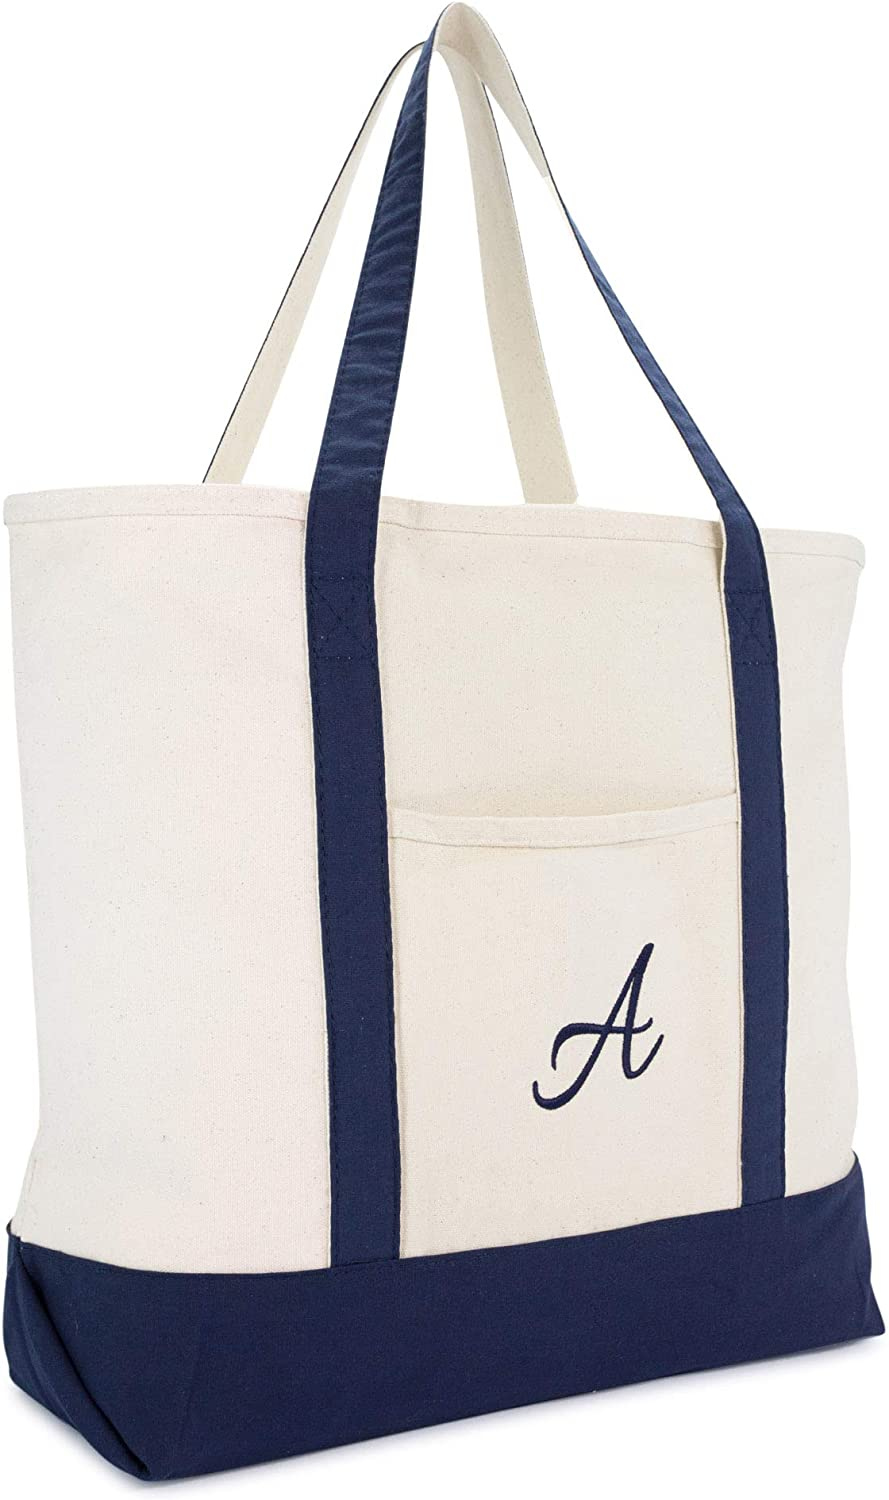 Black tote bag with personalised letter Alphabet Bags Monogram Book Bag, Monogrammed Tote Bags for Women